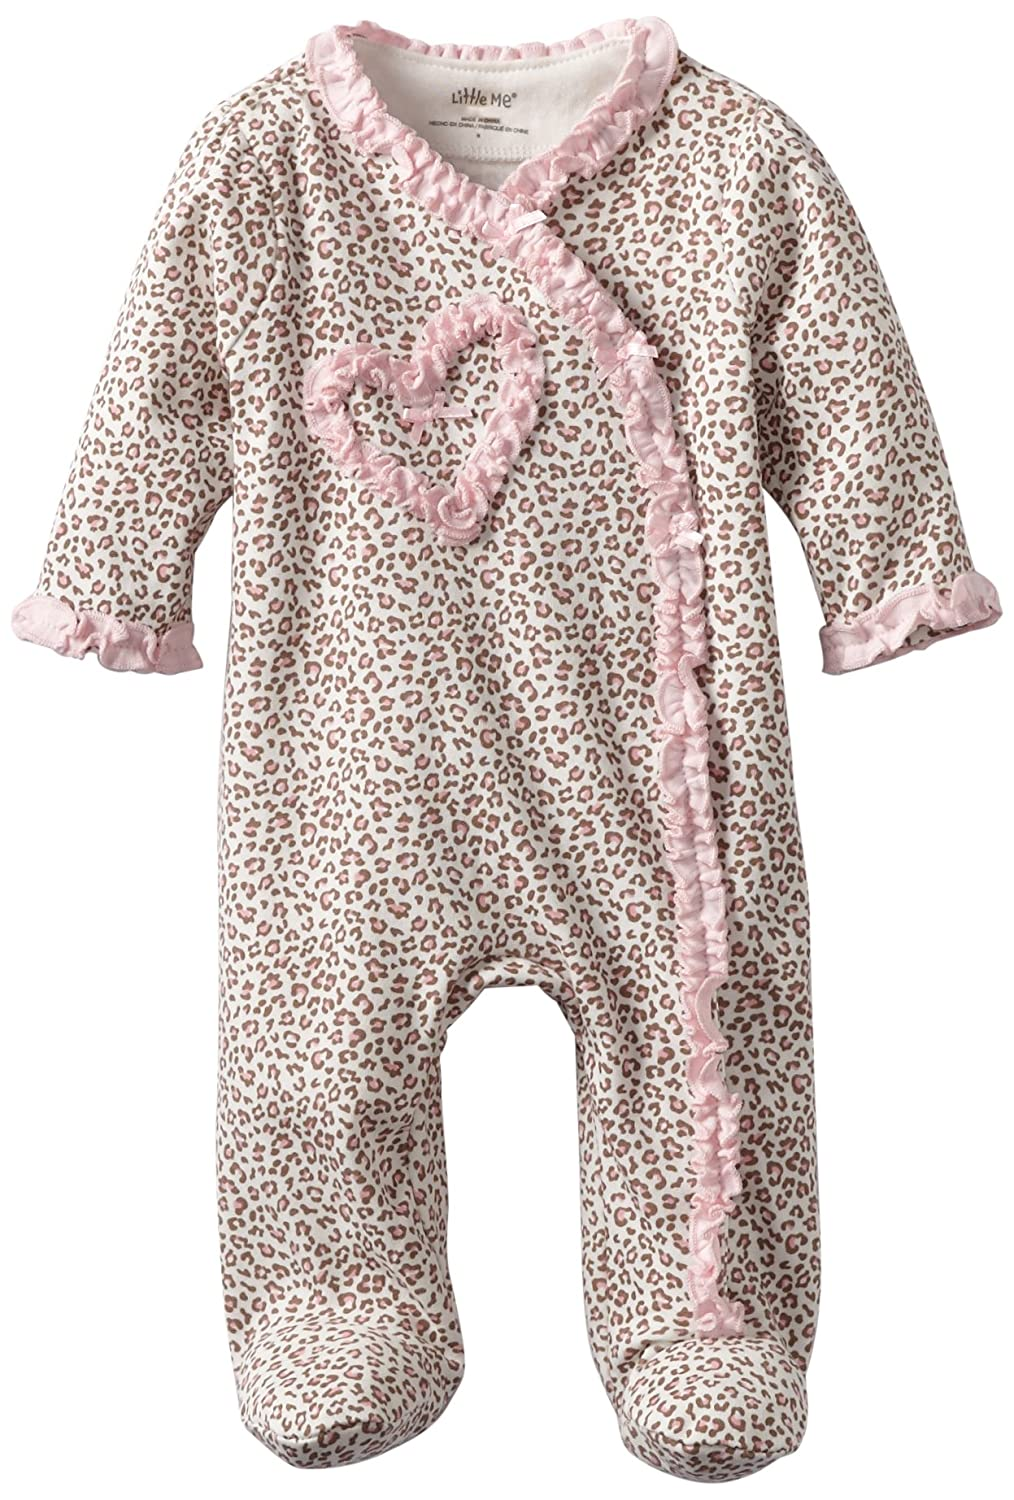 Little Me Baby-Girls Newborn Leopard Footie